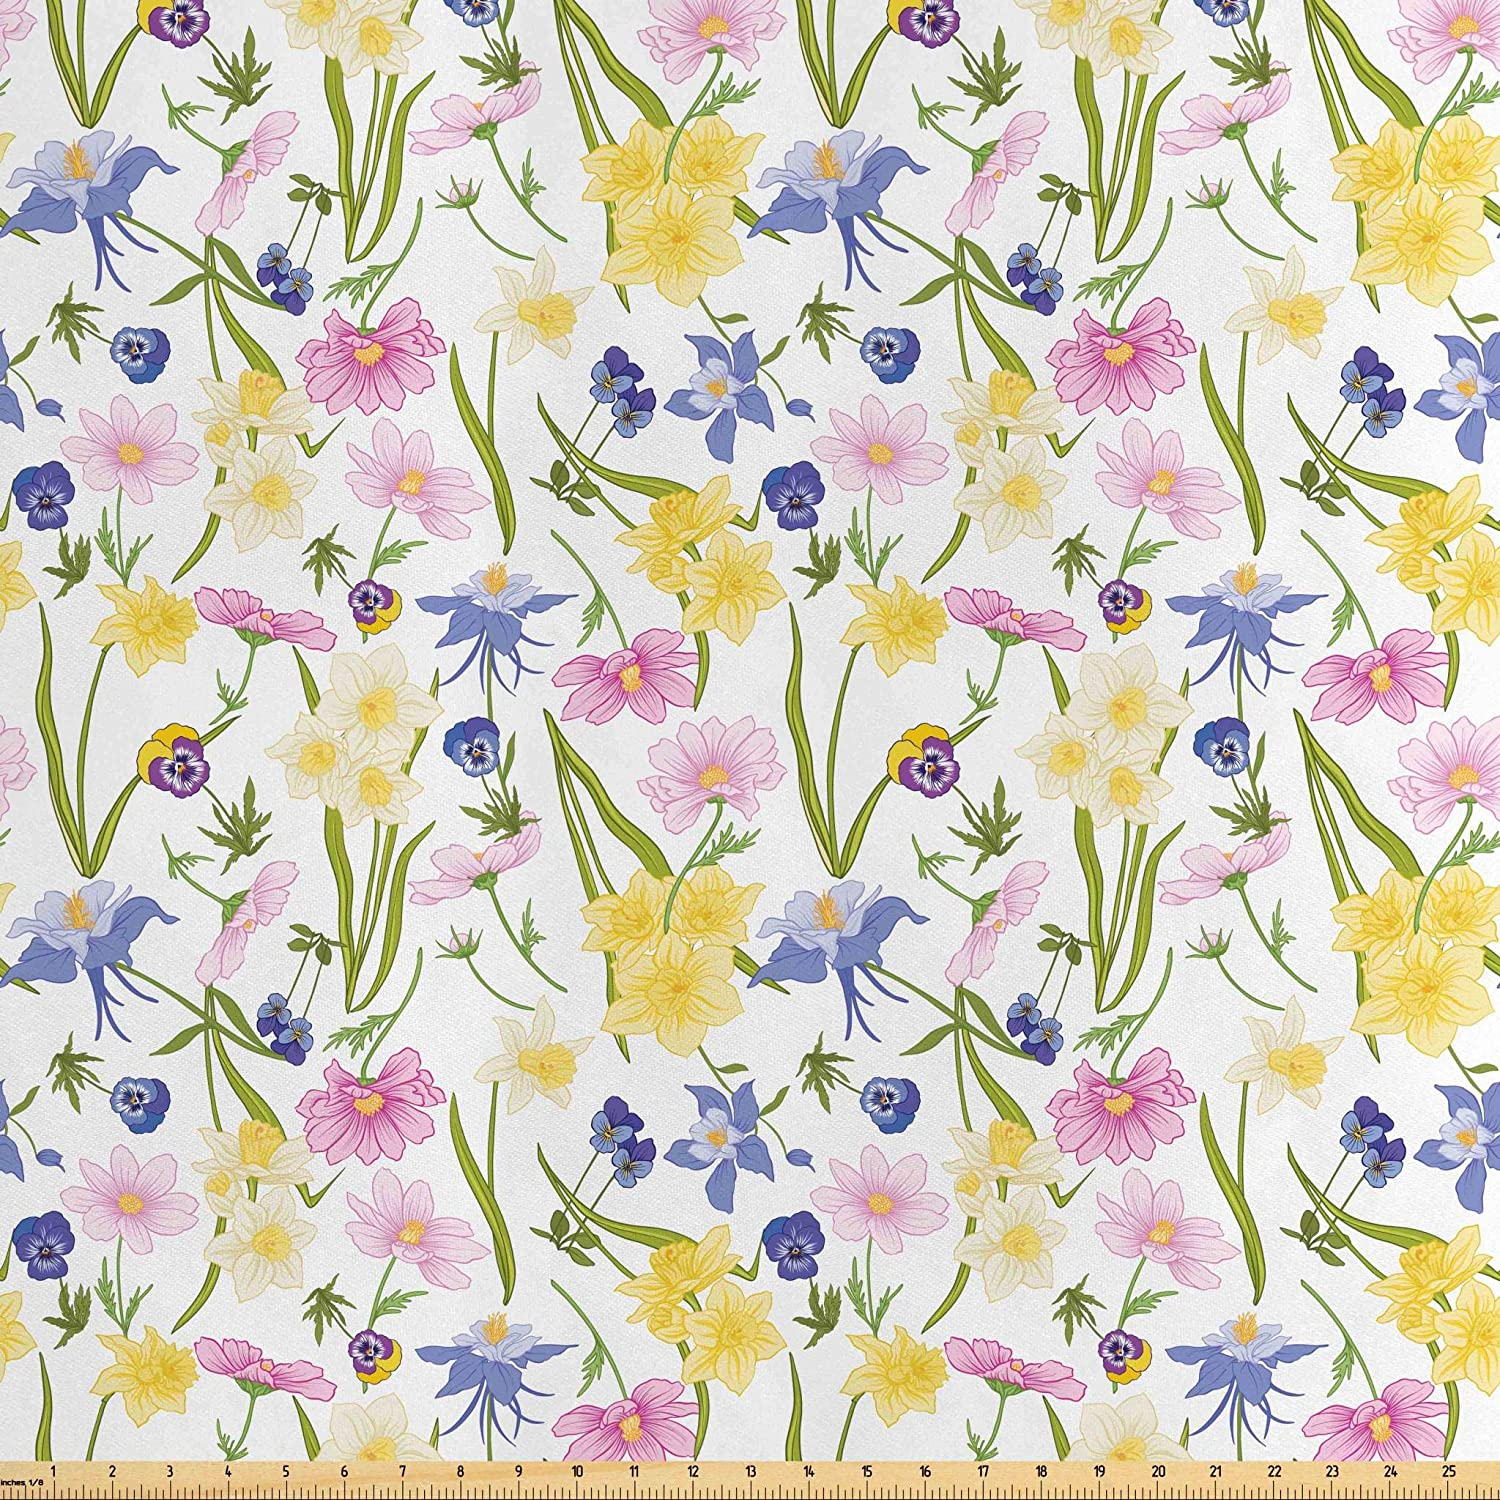 Lunarable Gardening Fabric by The Yard, Soft Colored Botanical Concept of Pansies Lilies Poppy Flowers and Wild Herbs, Decorative Satin Fabric for Home Textiles and Crafts, 3 Yards, Multicolor